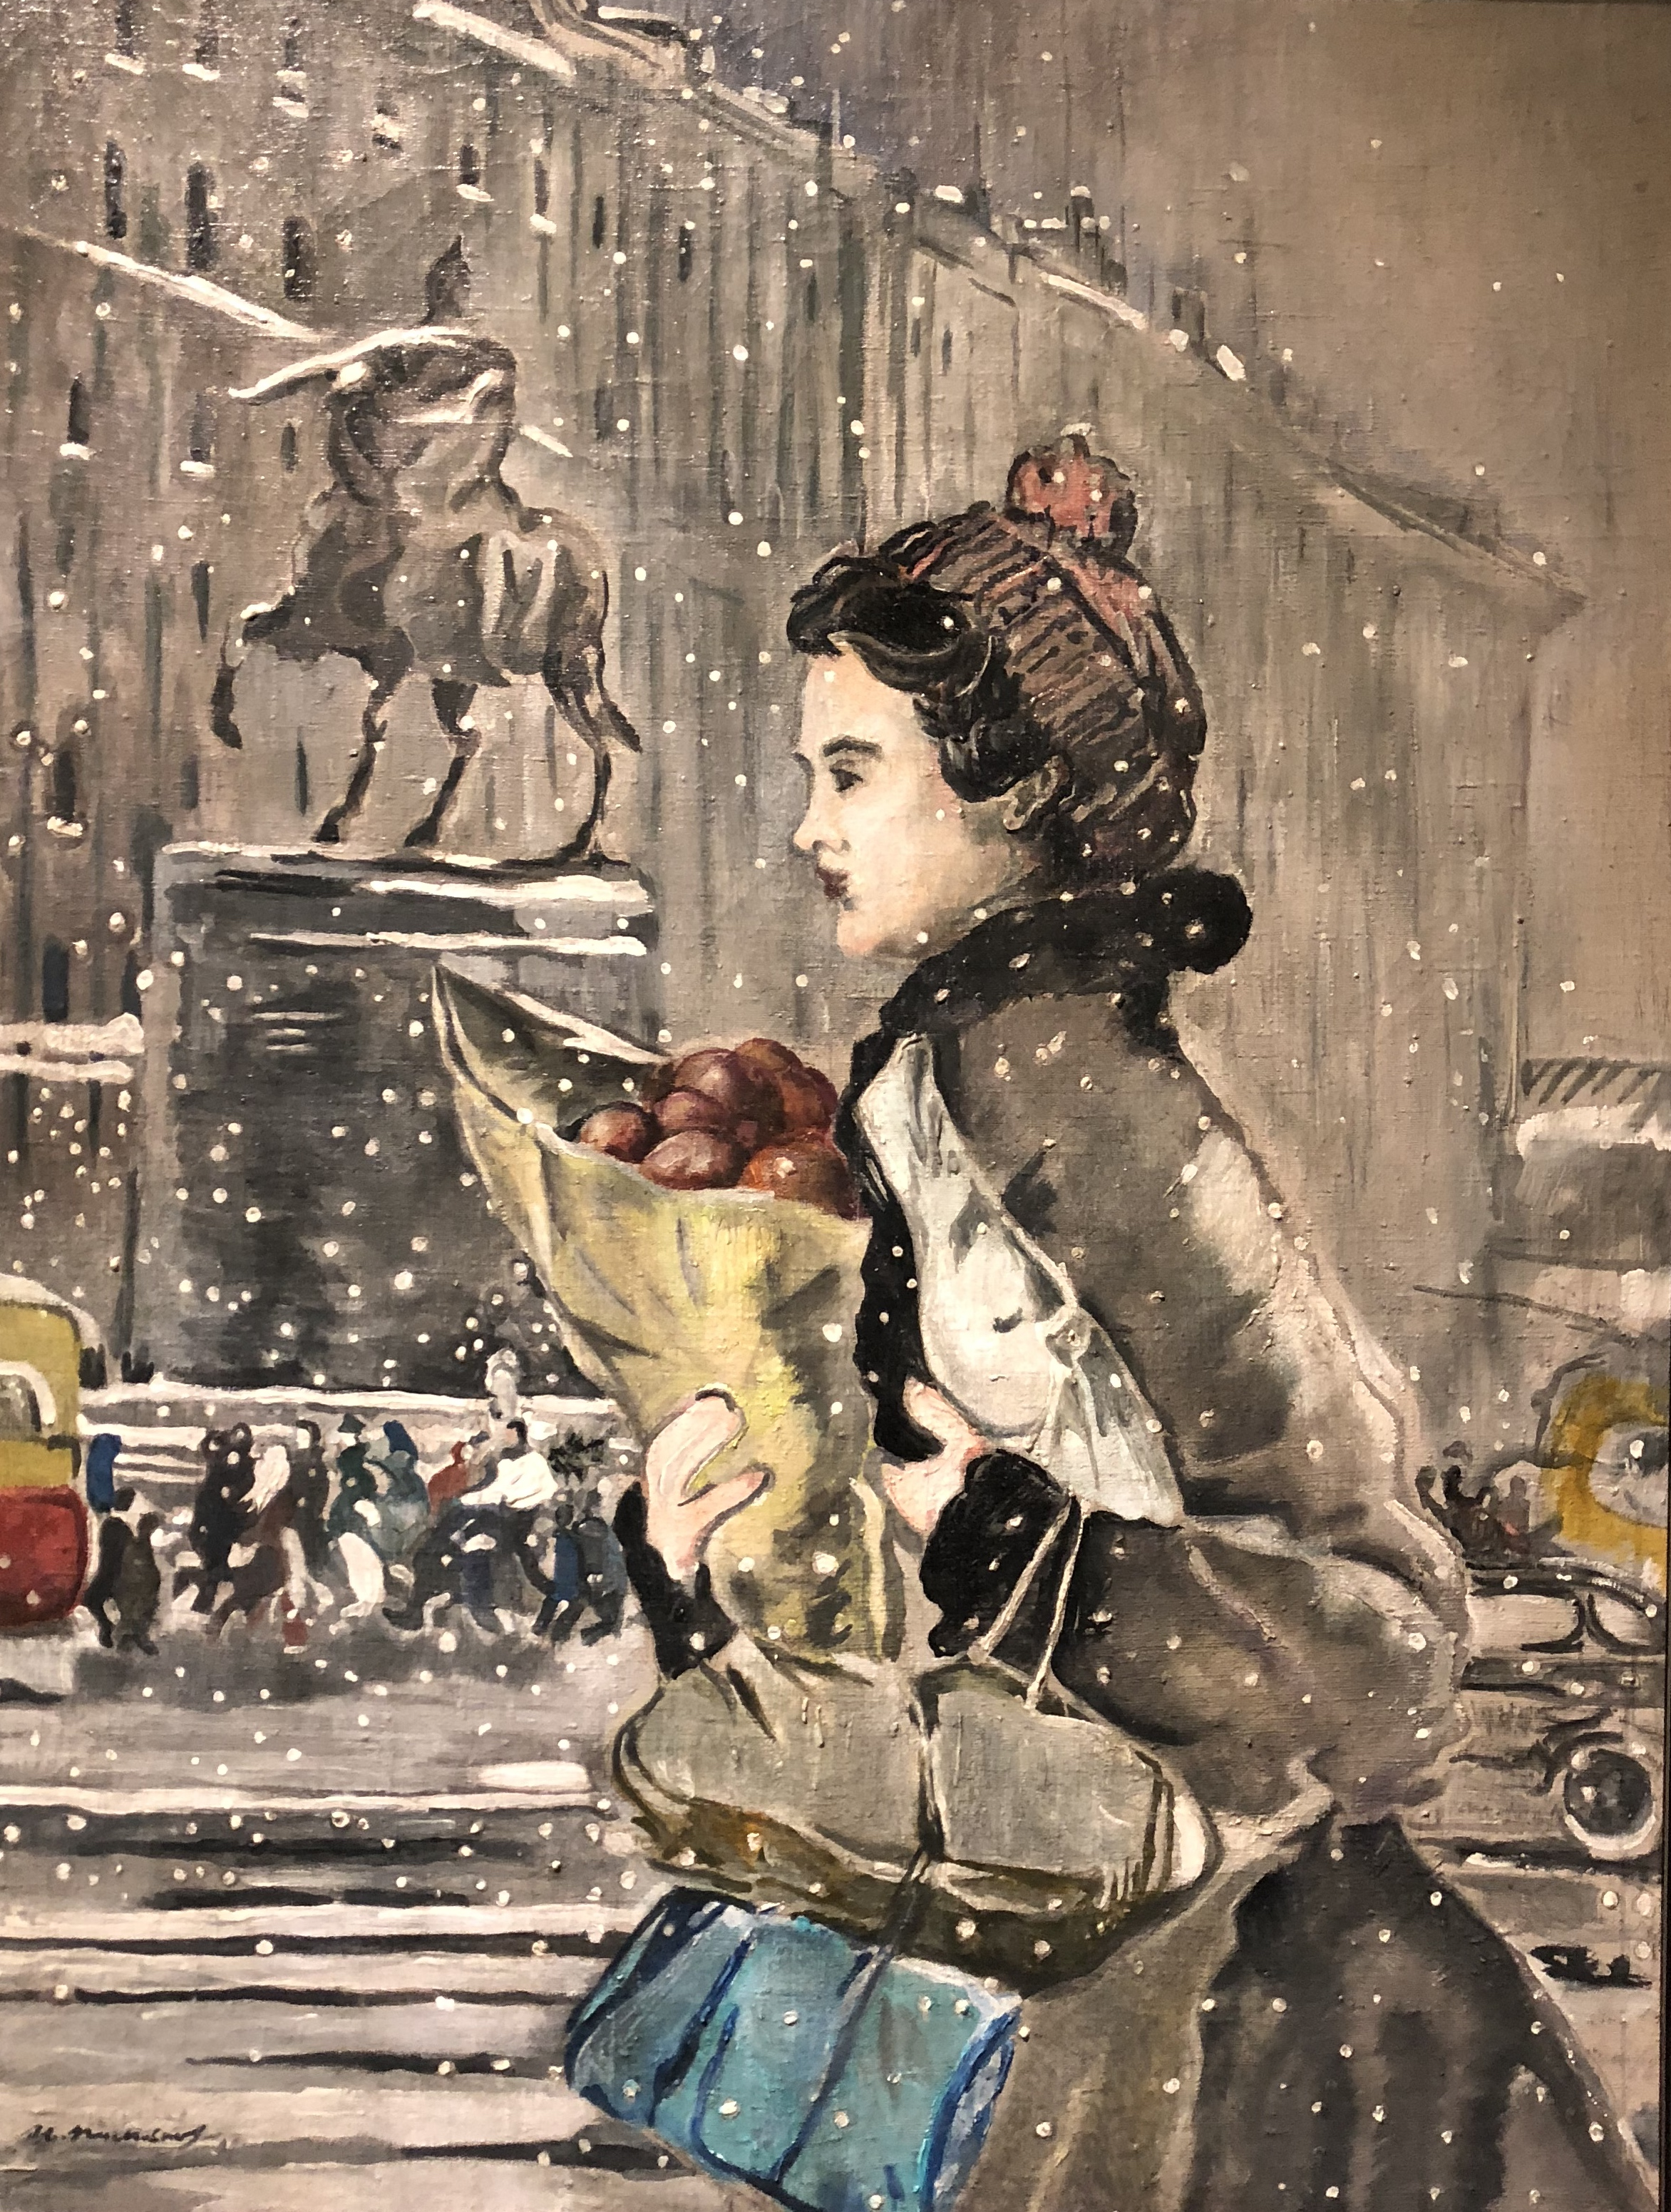 Winter in Moscow by Pimenov